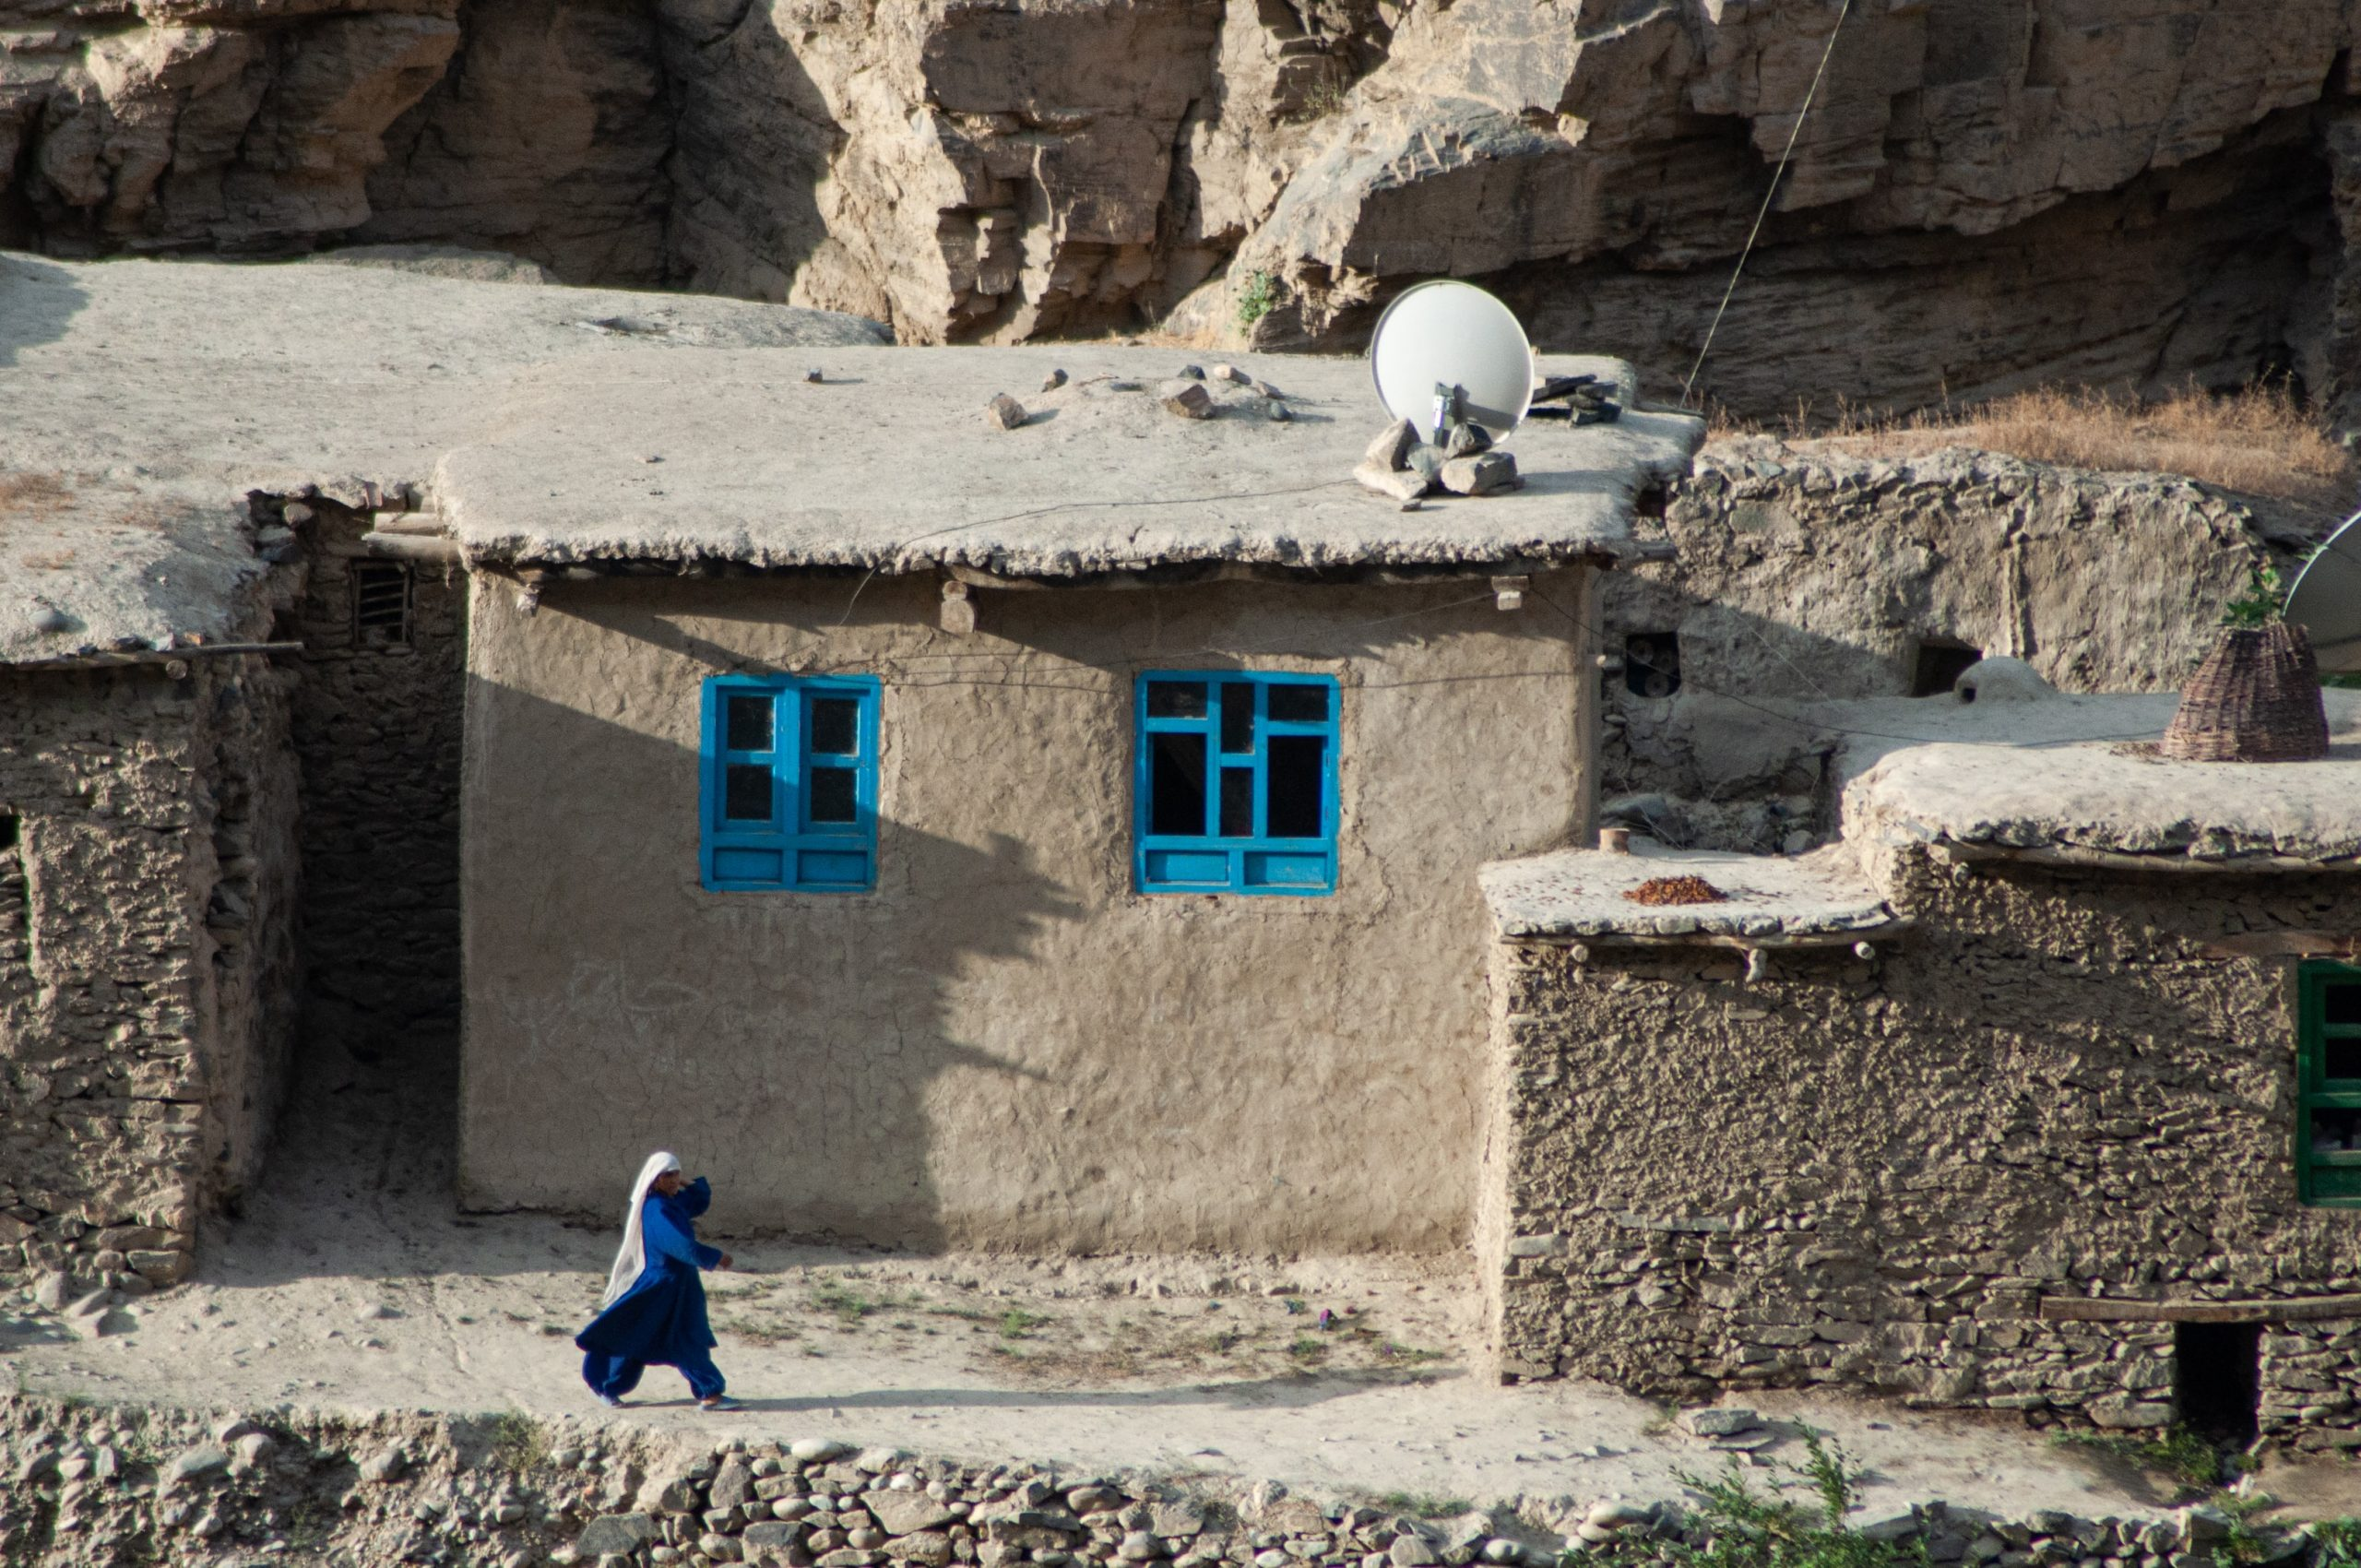 A women walks in front of a house in Afghanistan.